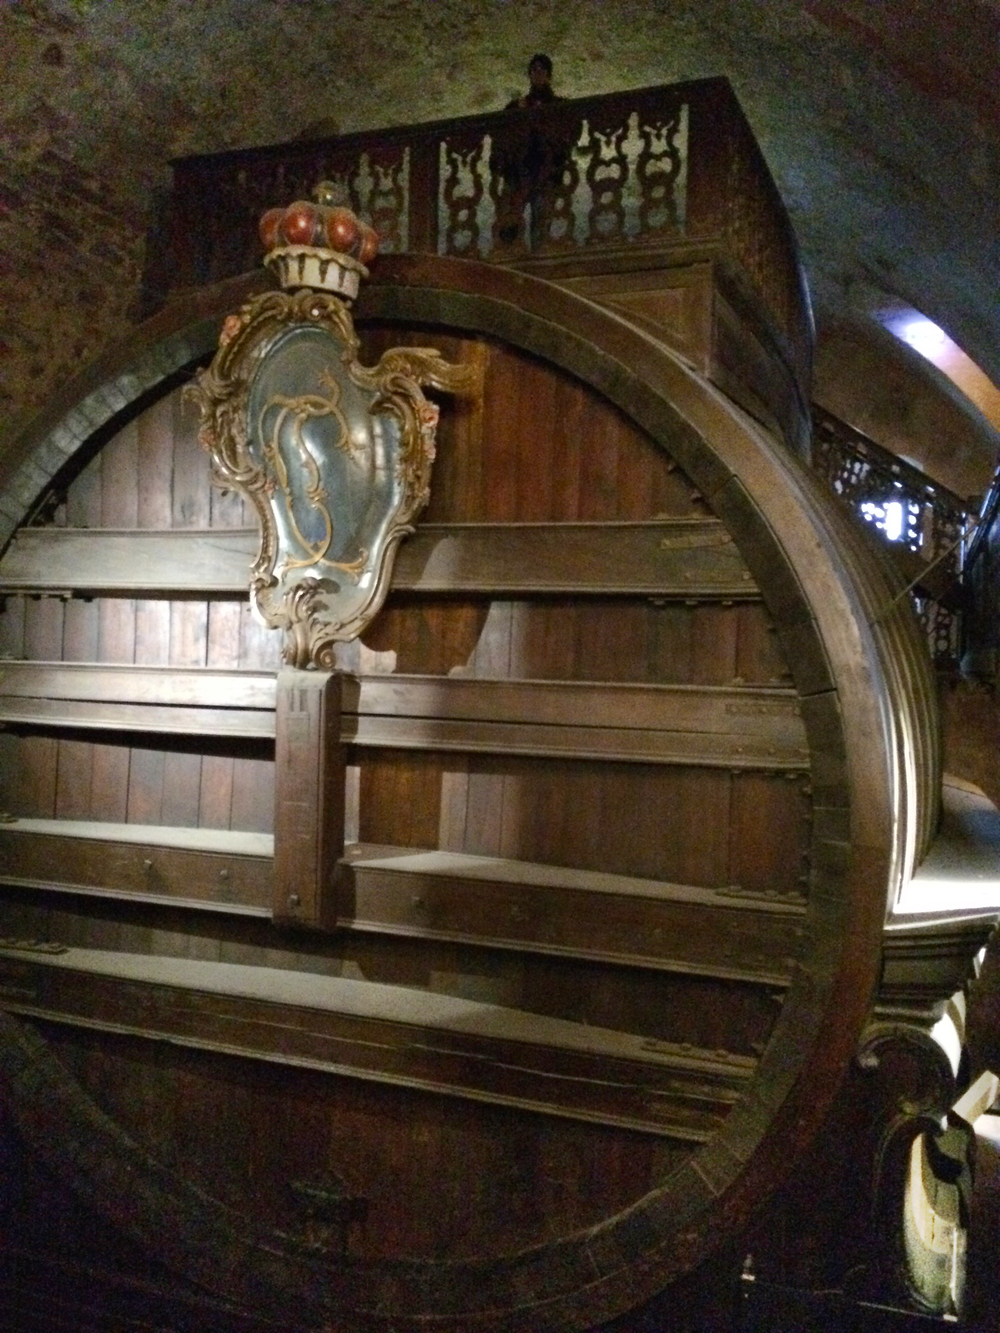 Heidelberg Castle is also home to the biggest wine keg in the world!